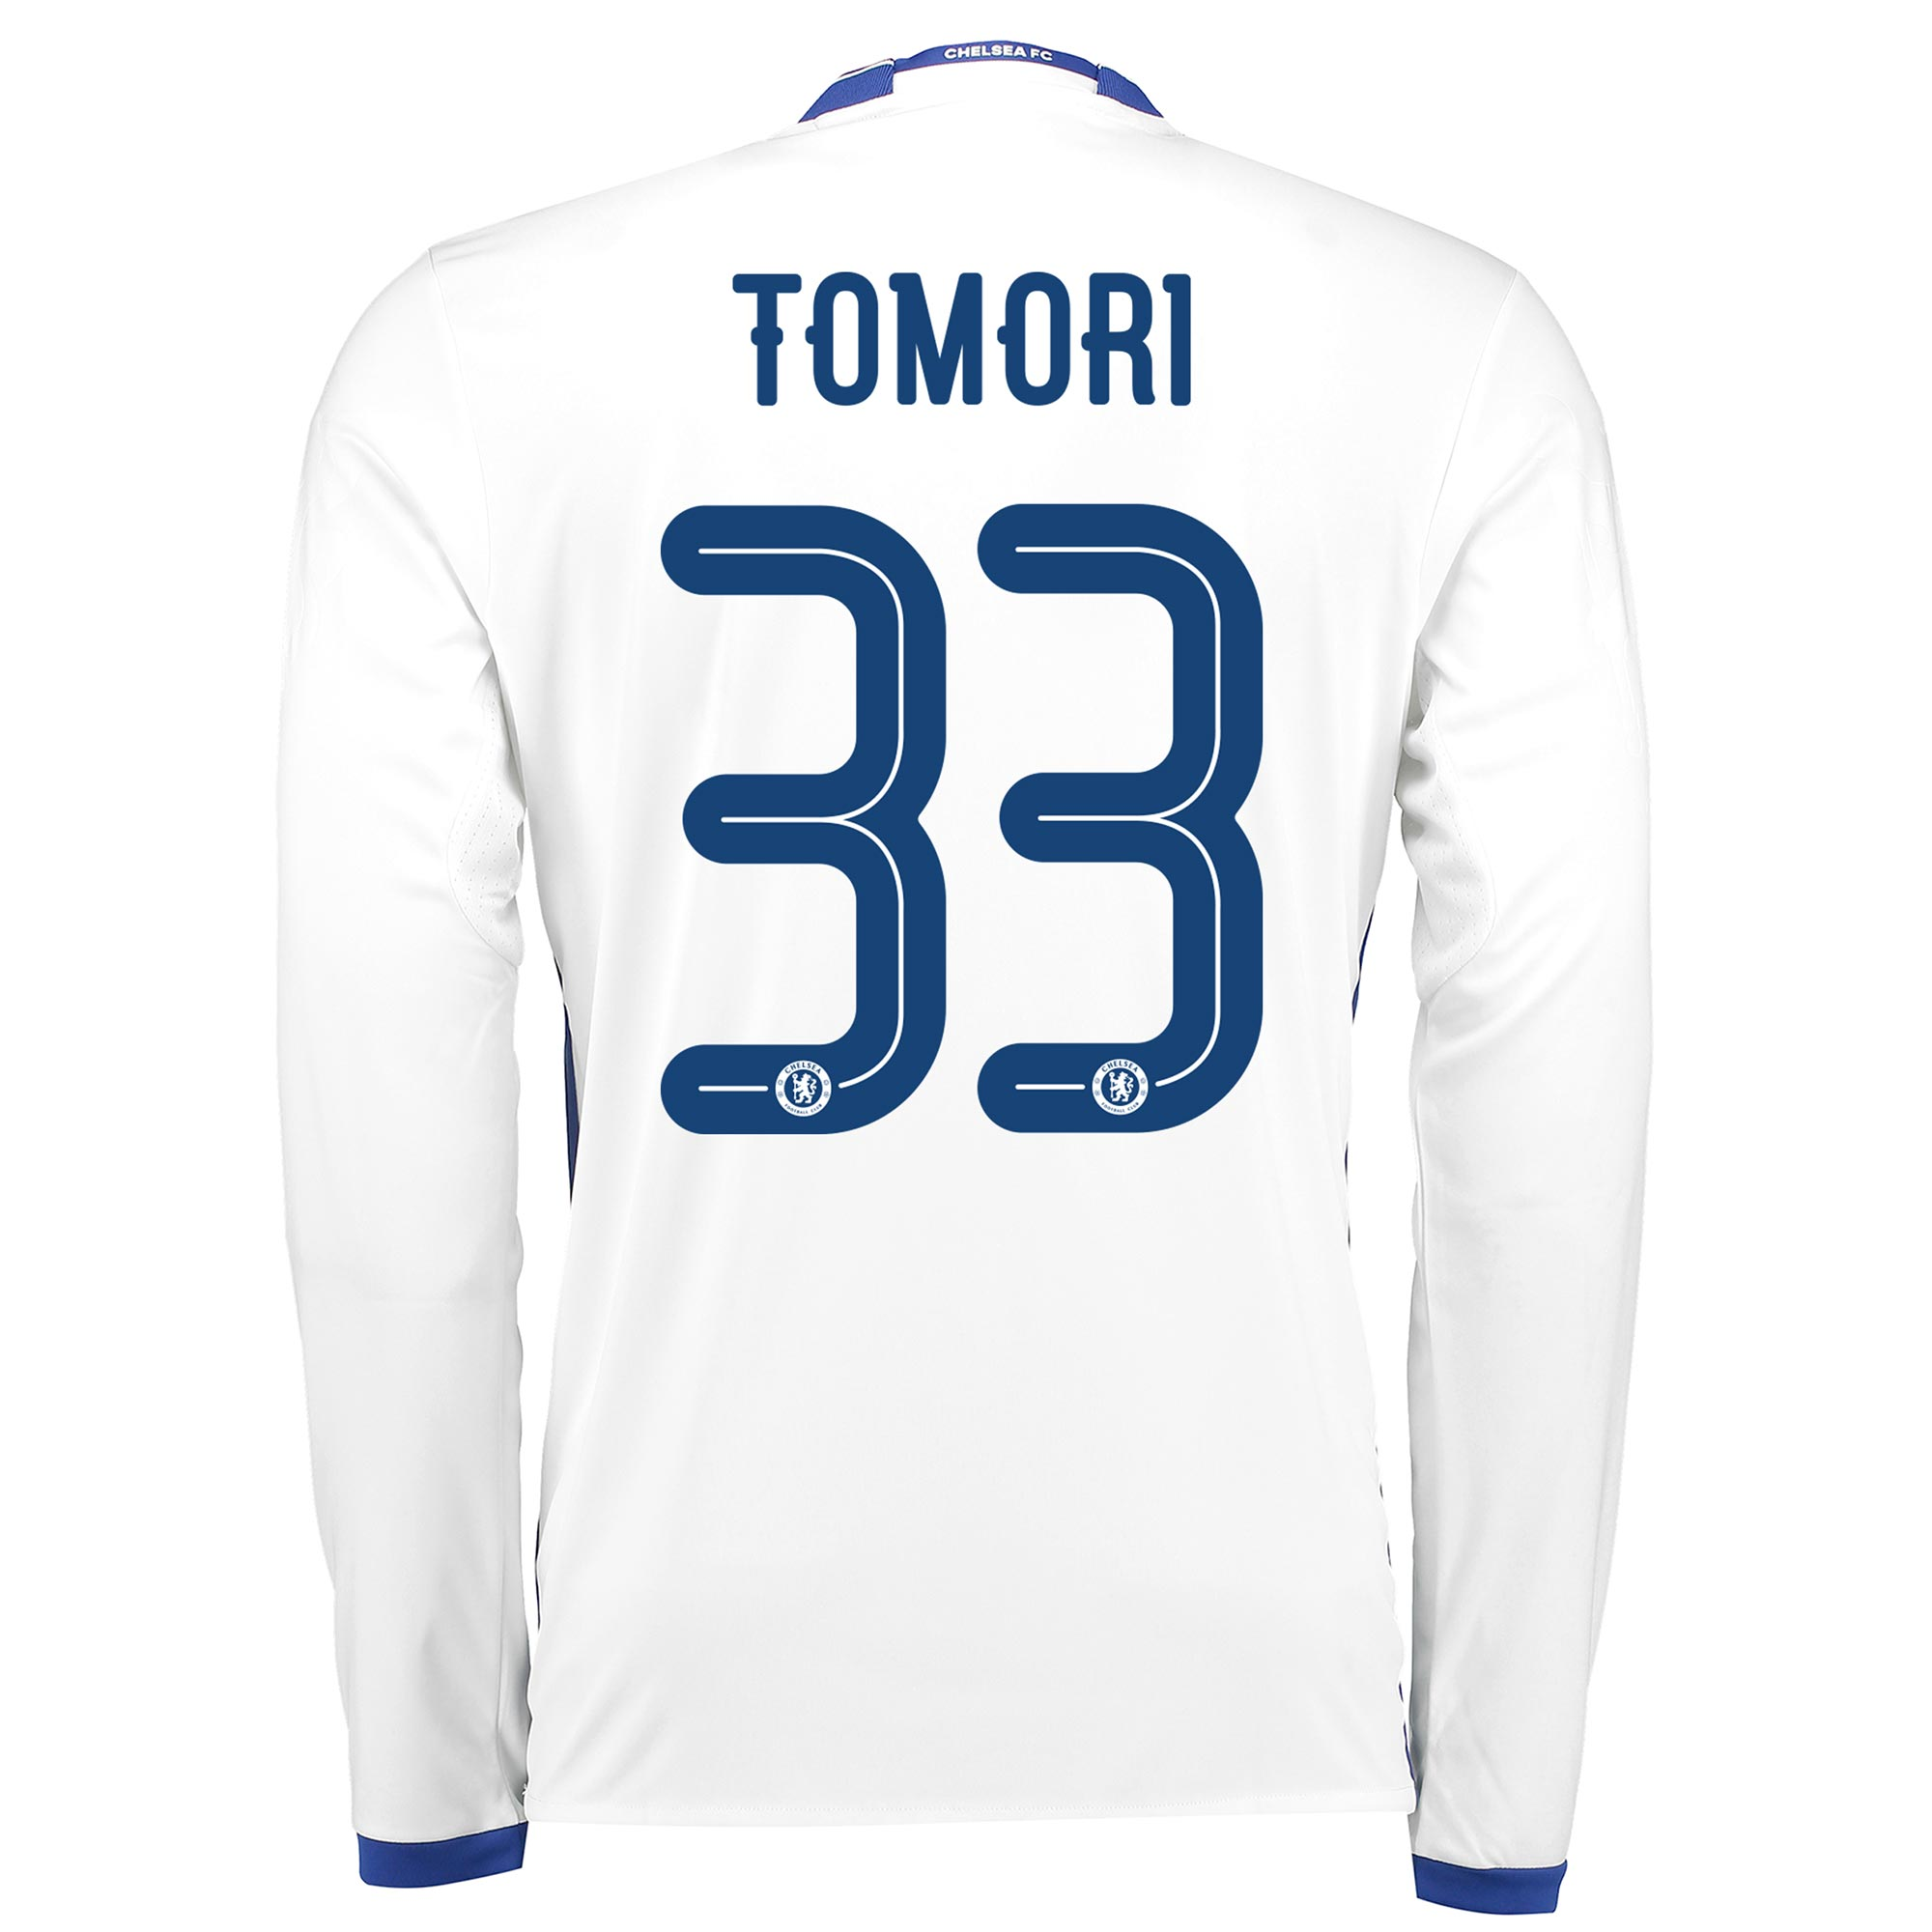 Image of Chelsea Linear Third Shirt 16-17 - Long Sleeve with Tomori 33 printing, N/A